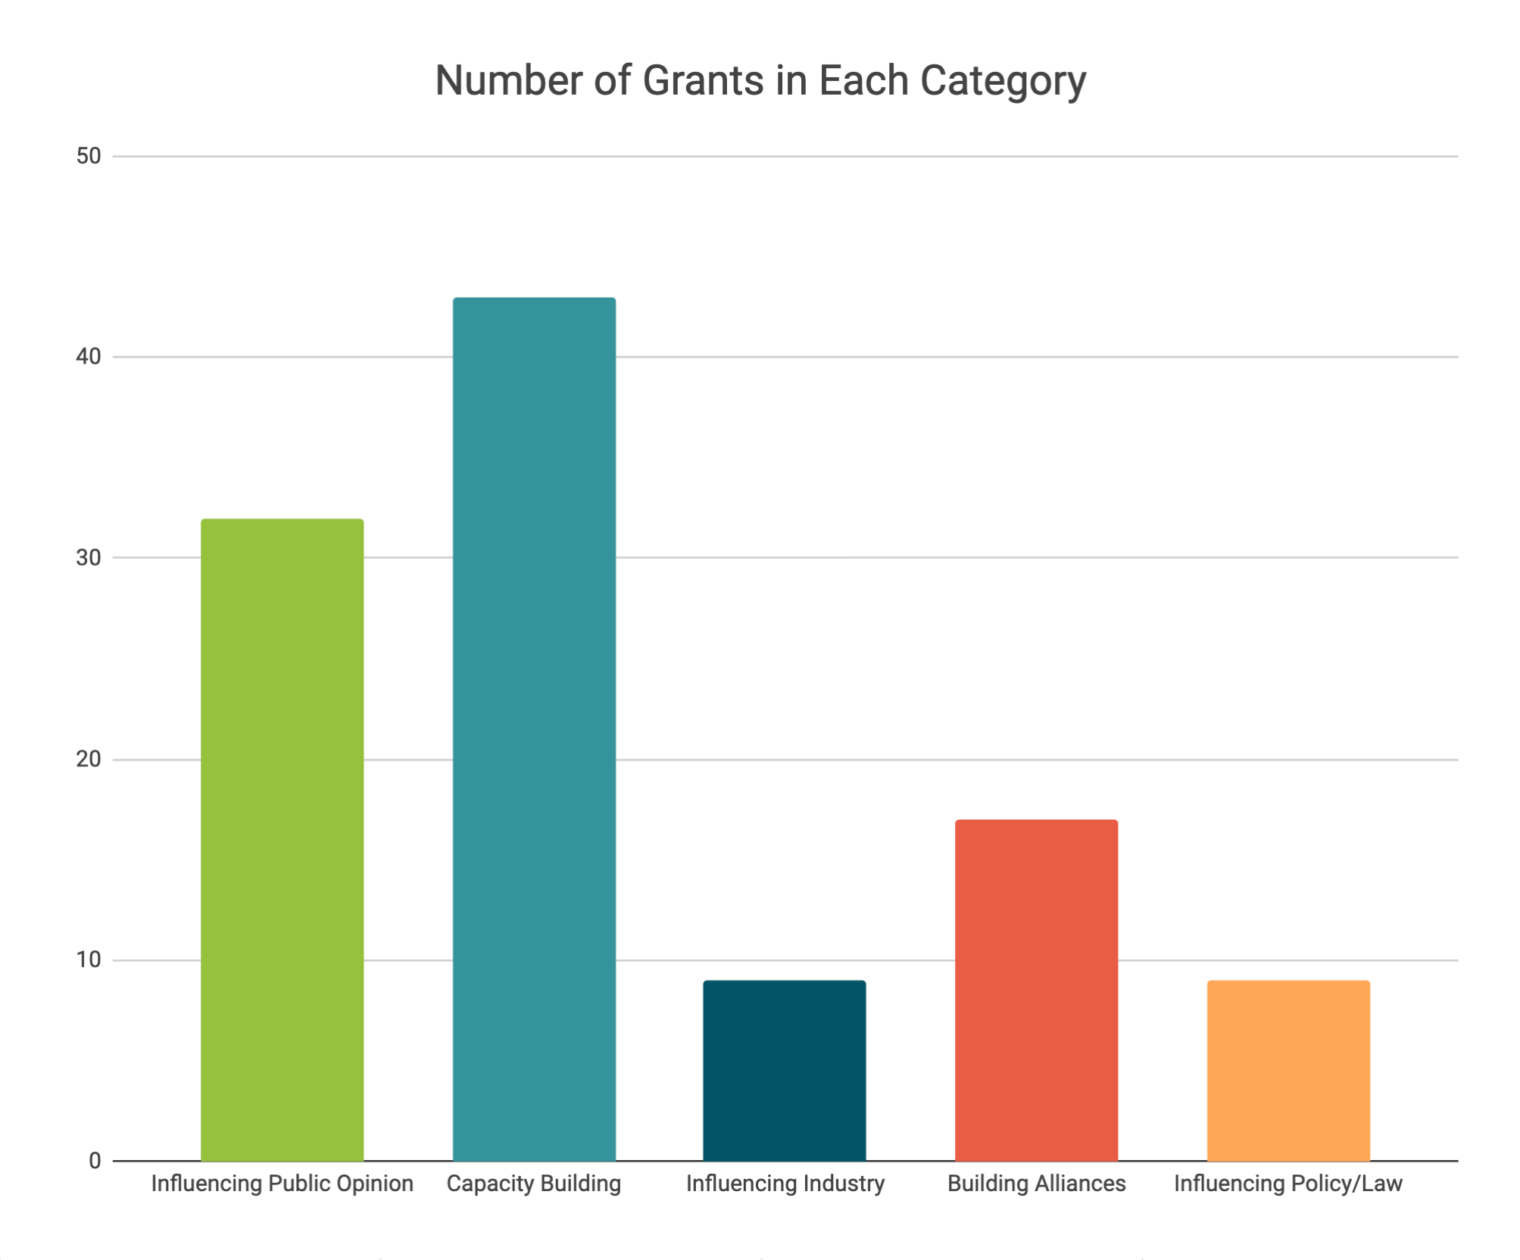 https://animalcharityevaluators.org/wp-content/uploads/2019/04/eaaf-grants-early-2019-category-chart-760x630@2x.png